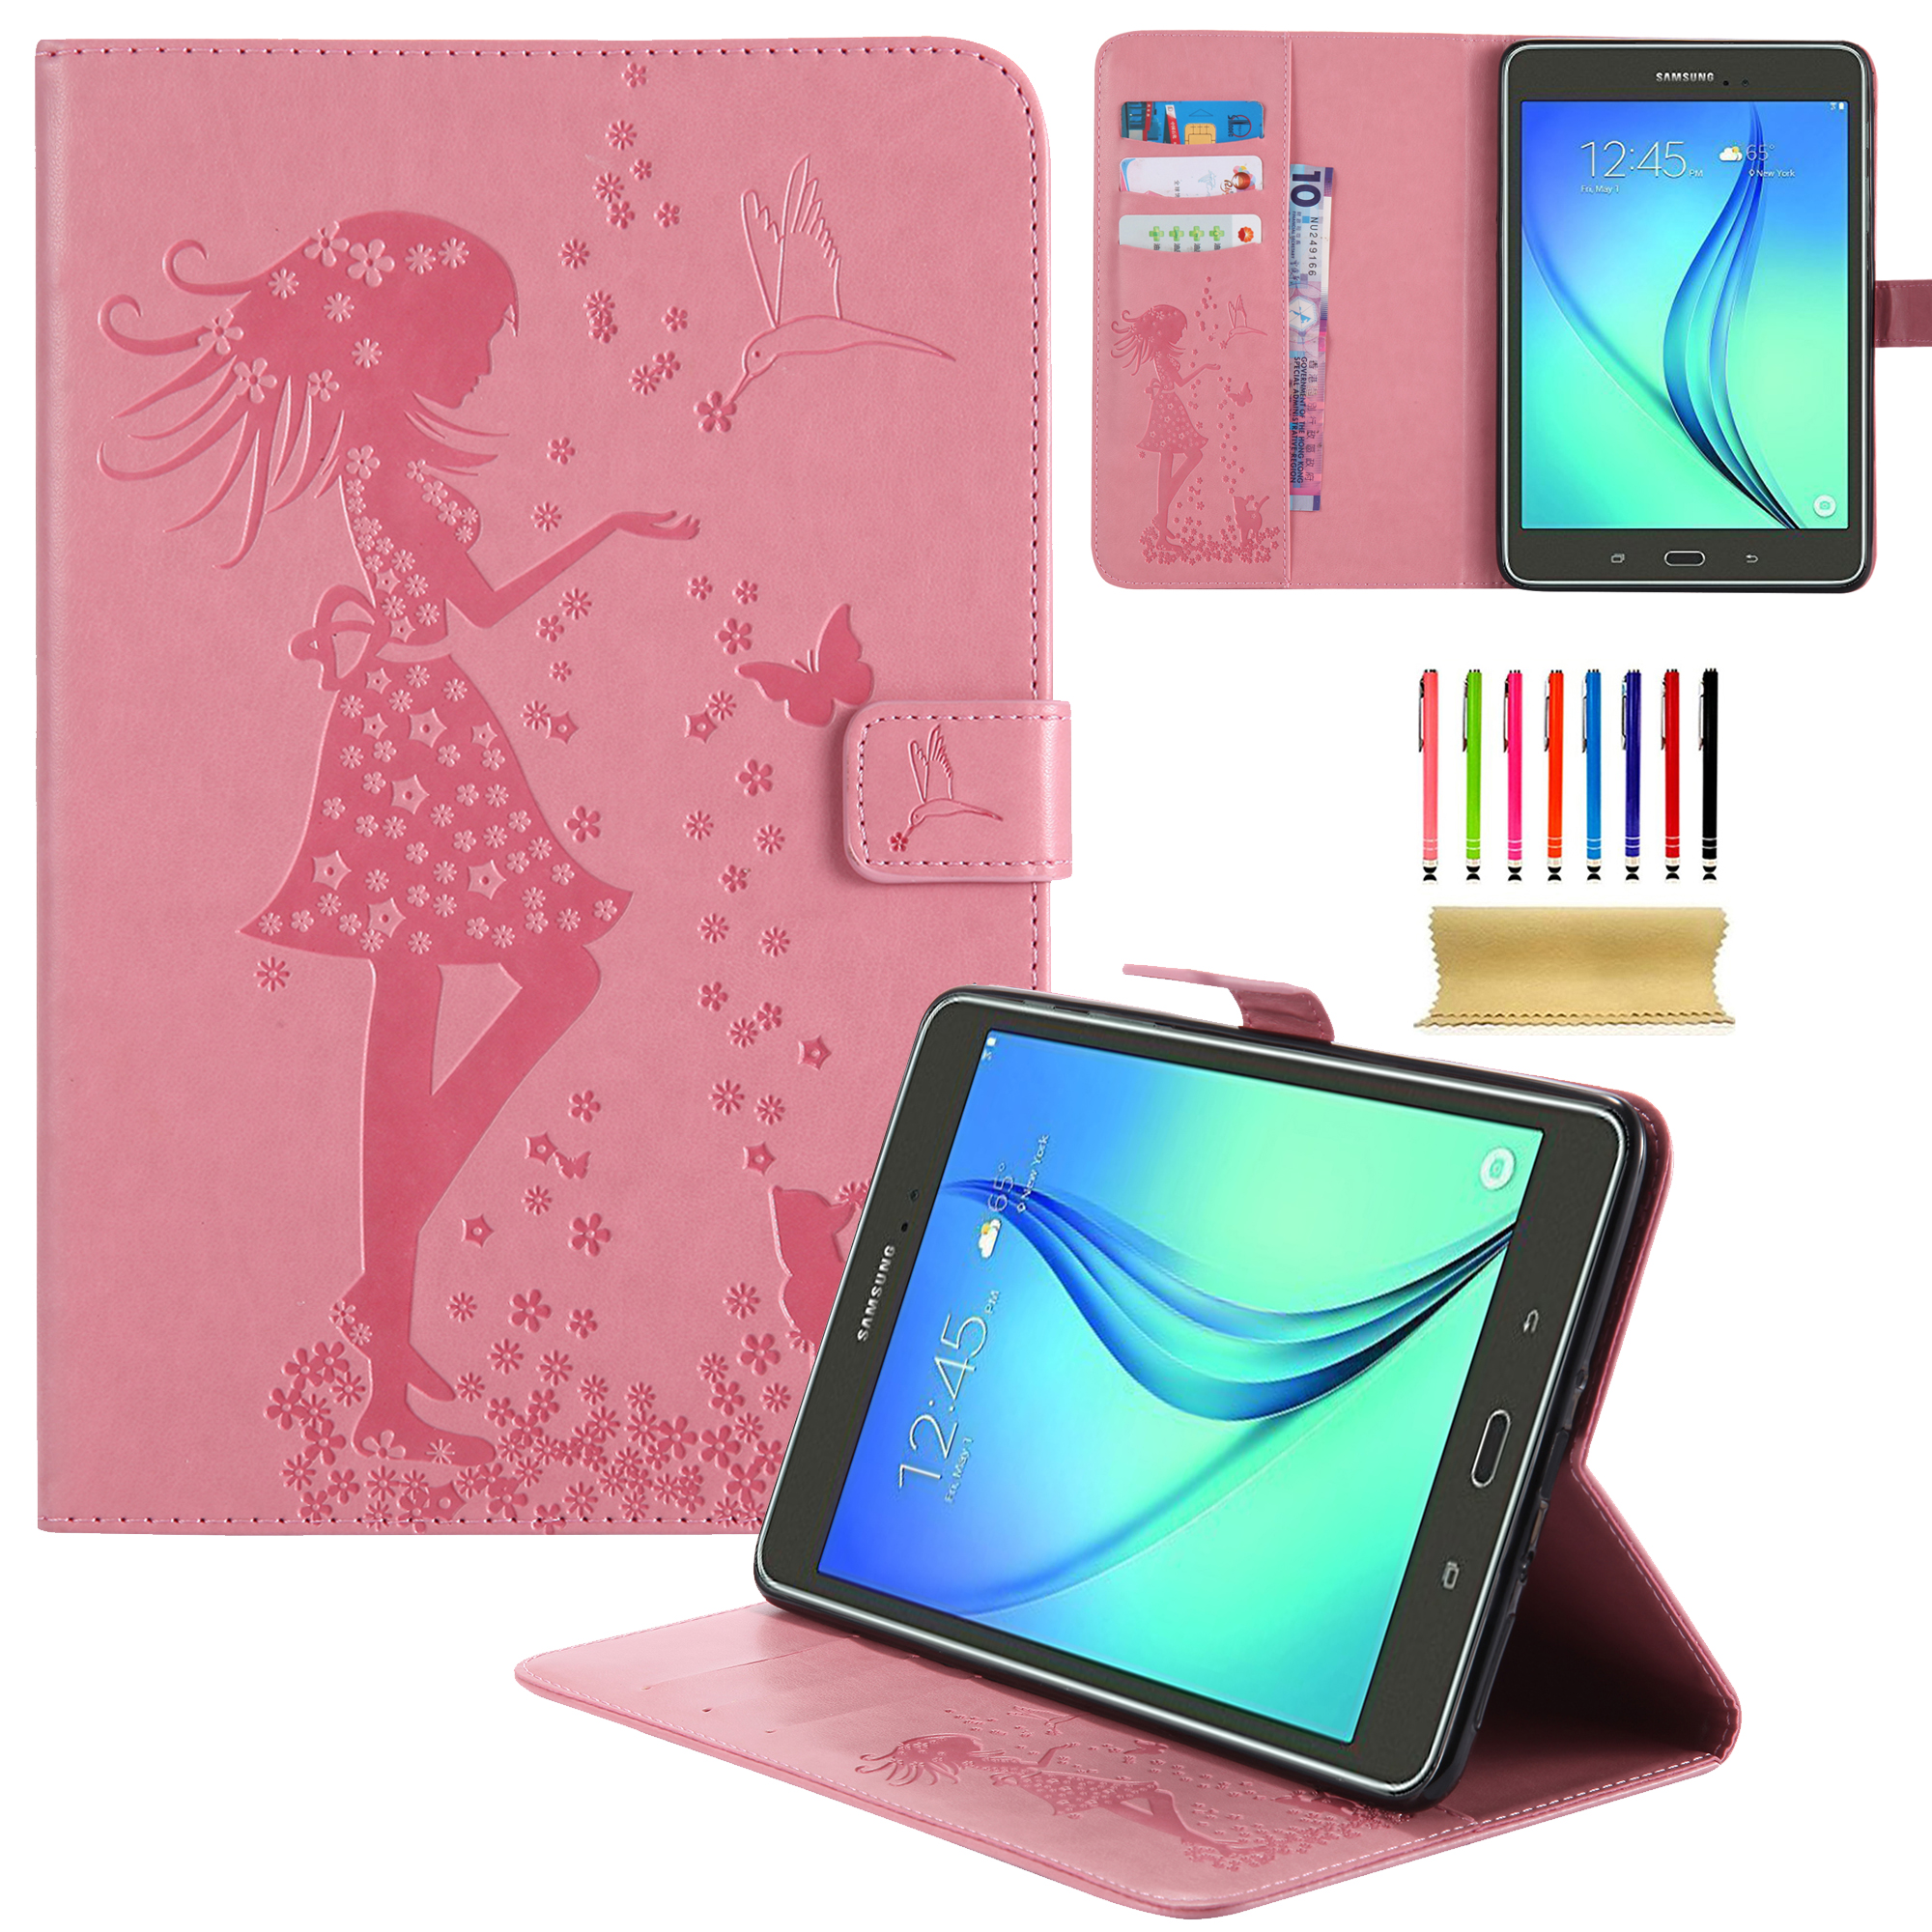 For Samsung Galaxy Tab A 8.0 Case, SM-T350 Tablet Case - UUcovers Ultra Slim Butterfly & Girl Embossing Folio Stand Cover with Auto Wake/ Sleep Feature Smart Wallet Protective Case, Pink